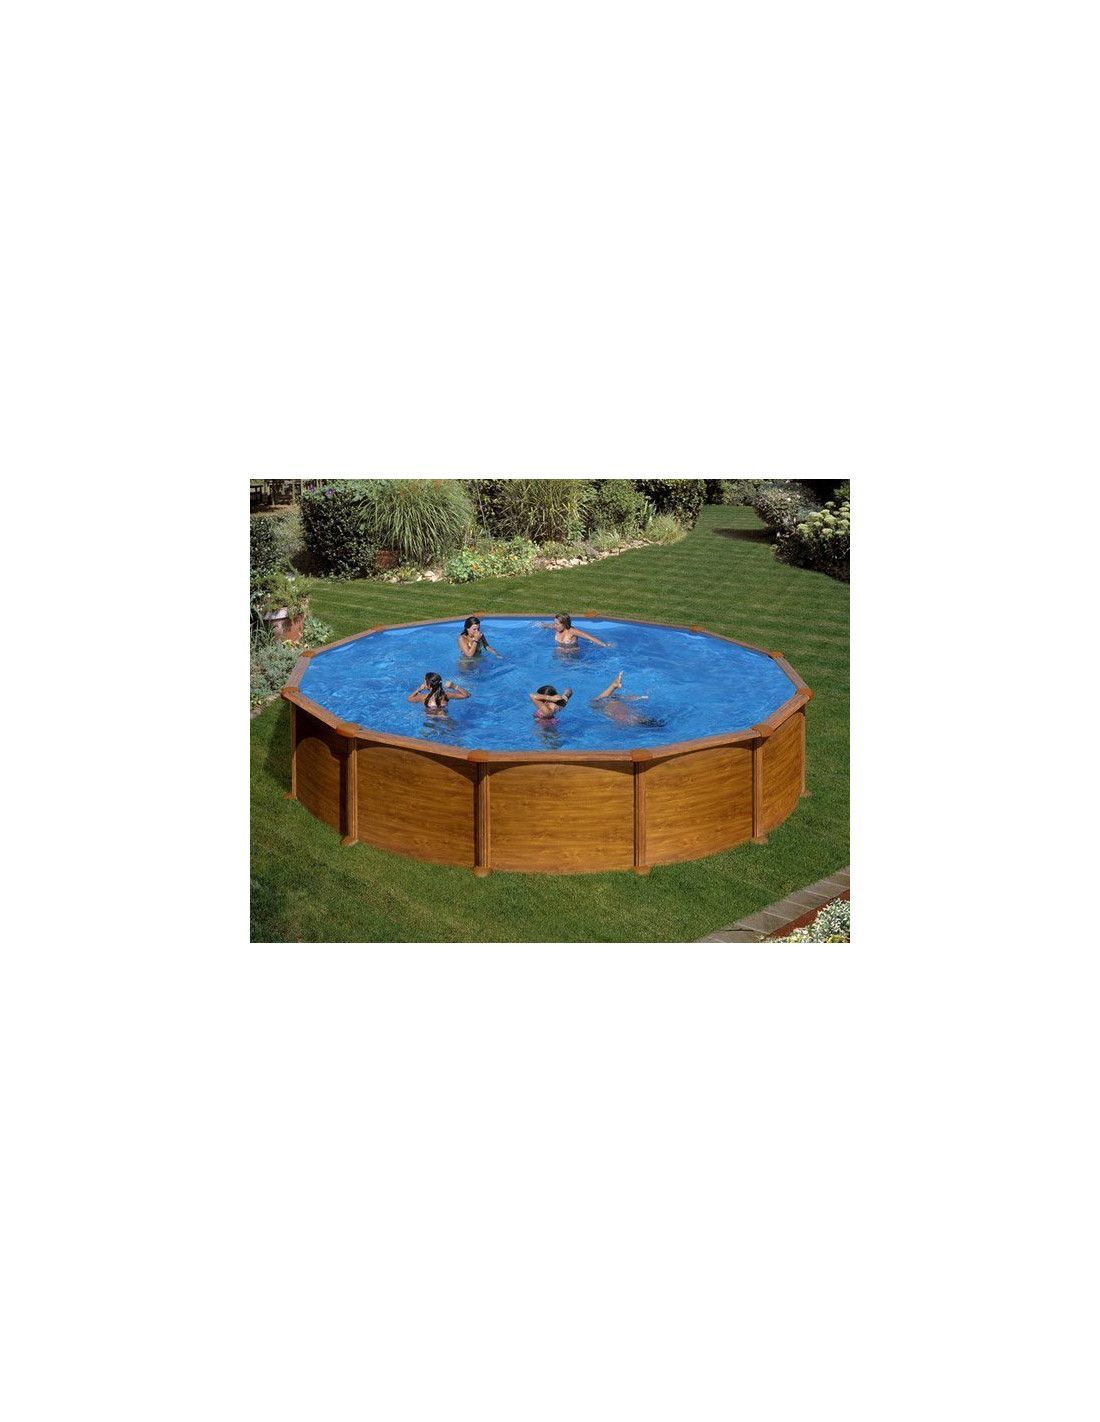 Kit piscine pas cher cool logopisicne with kit piscine for Piscine kit pas cher